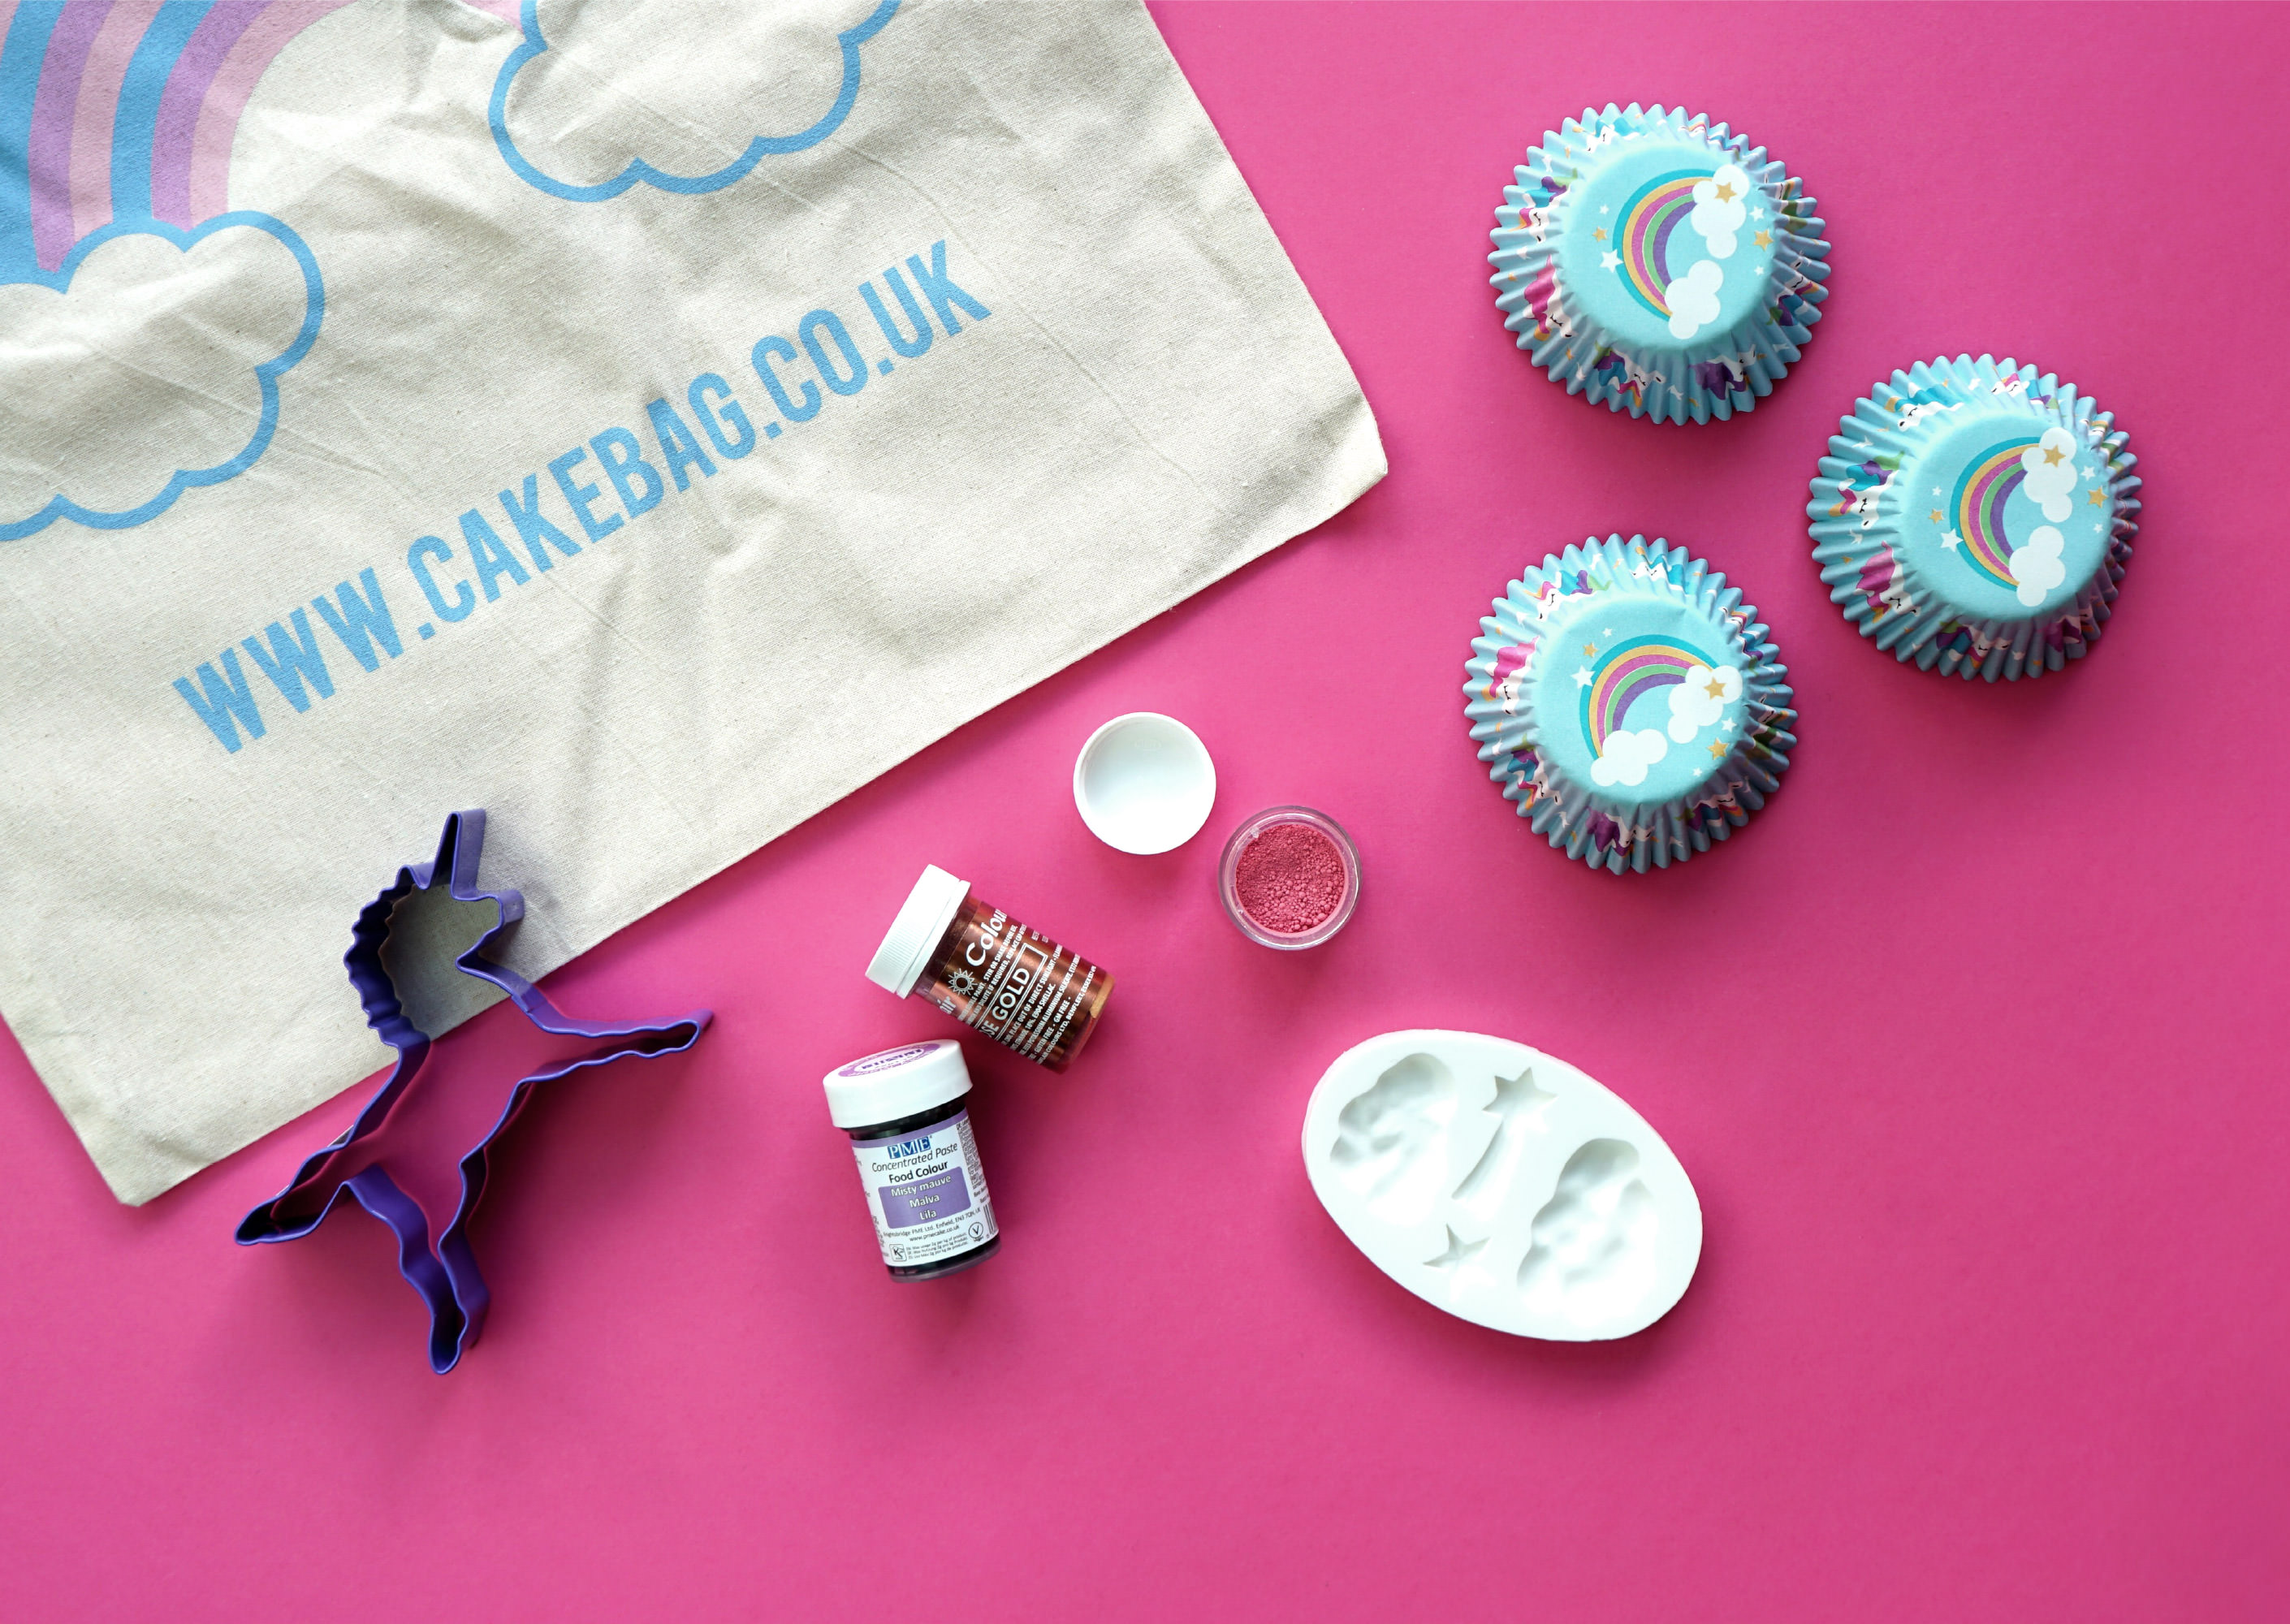 cakebag-products